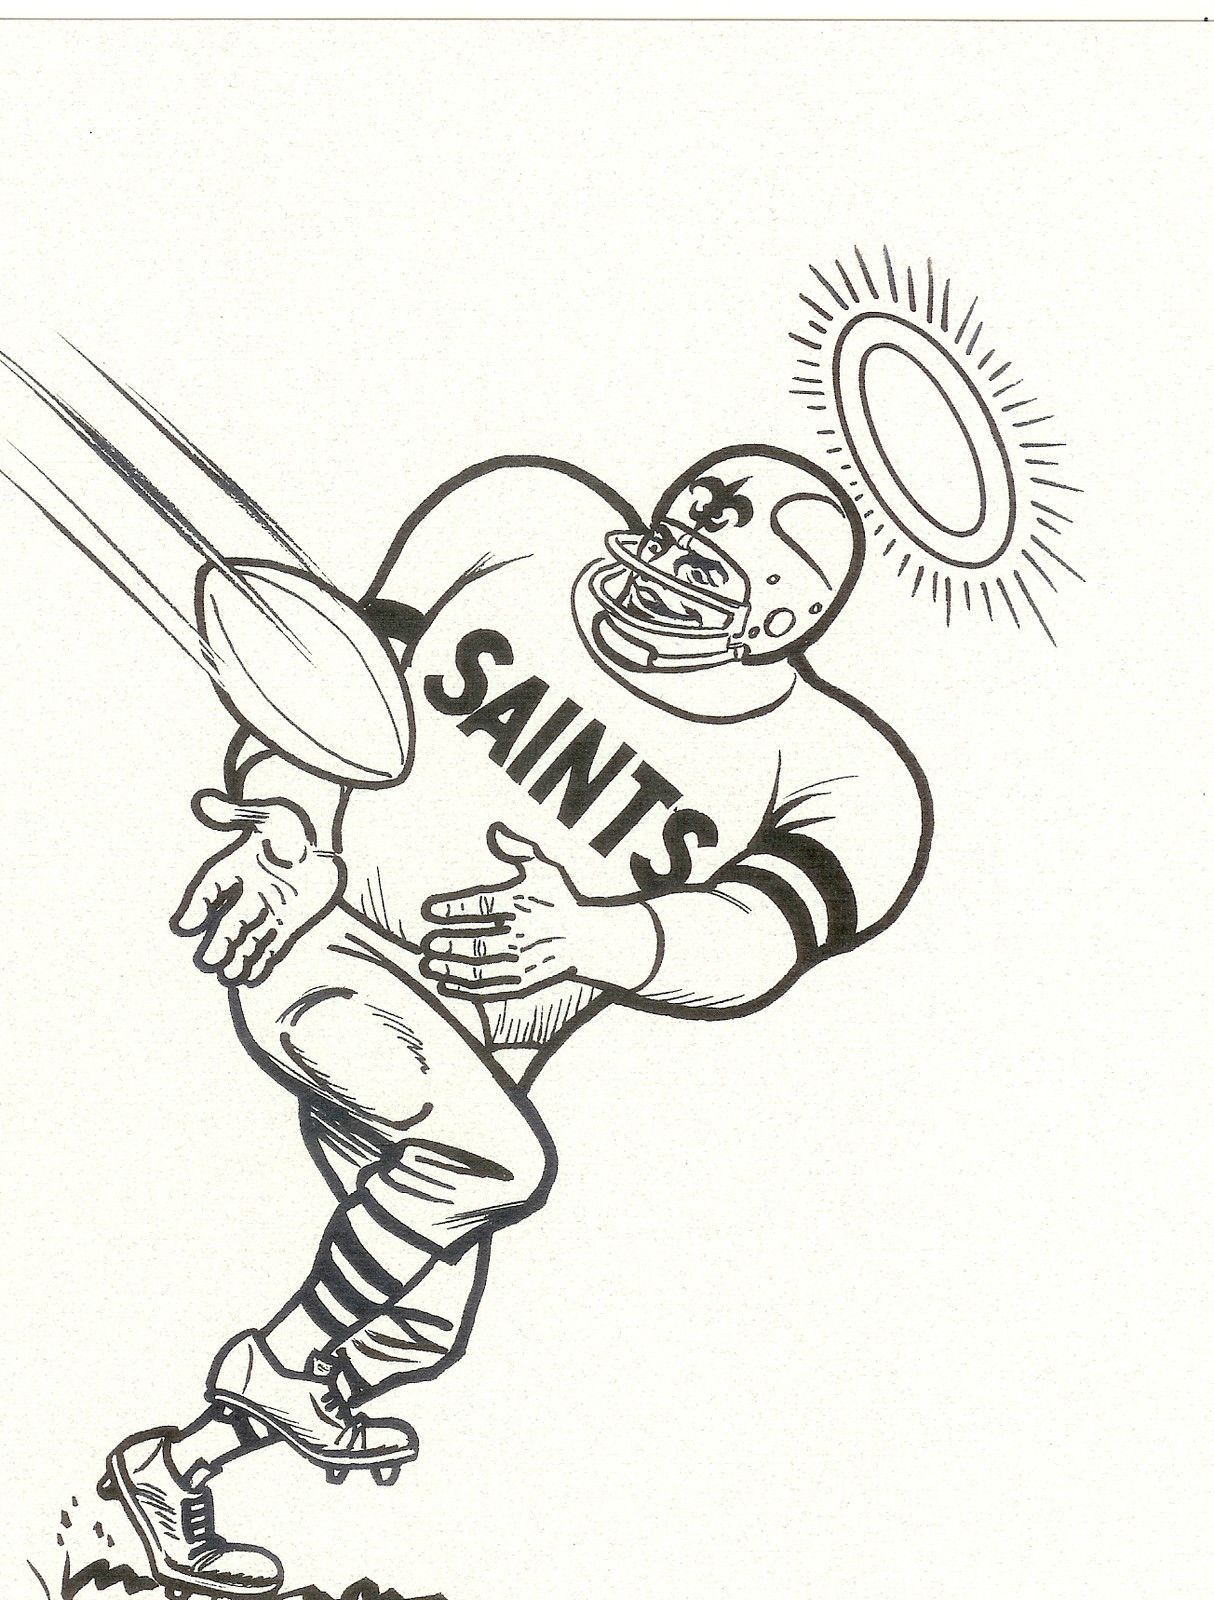 New Orleans Saints Coloring Page